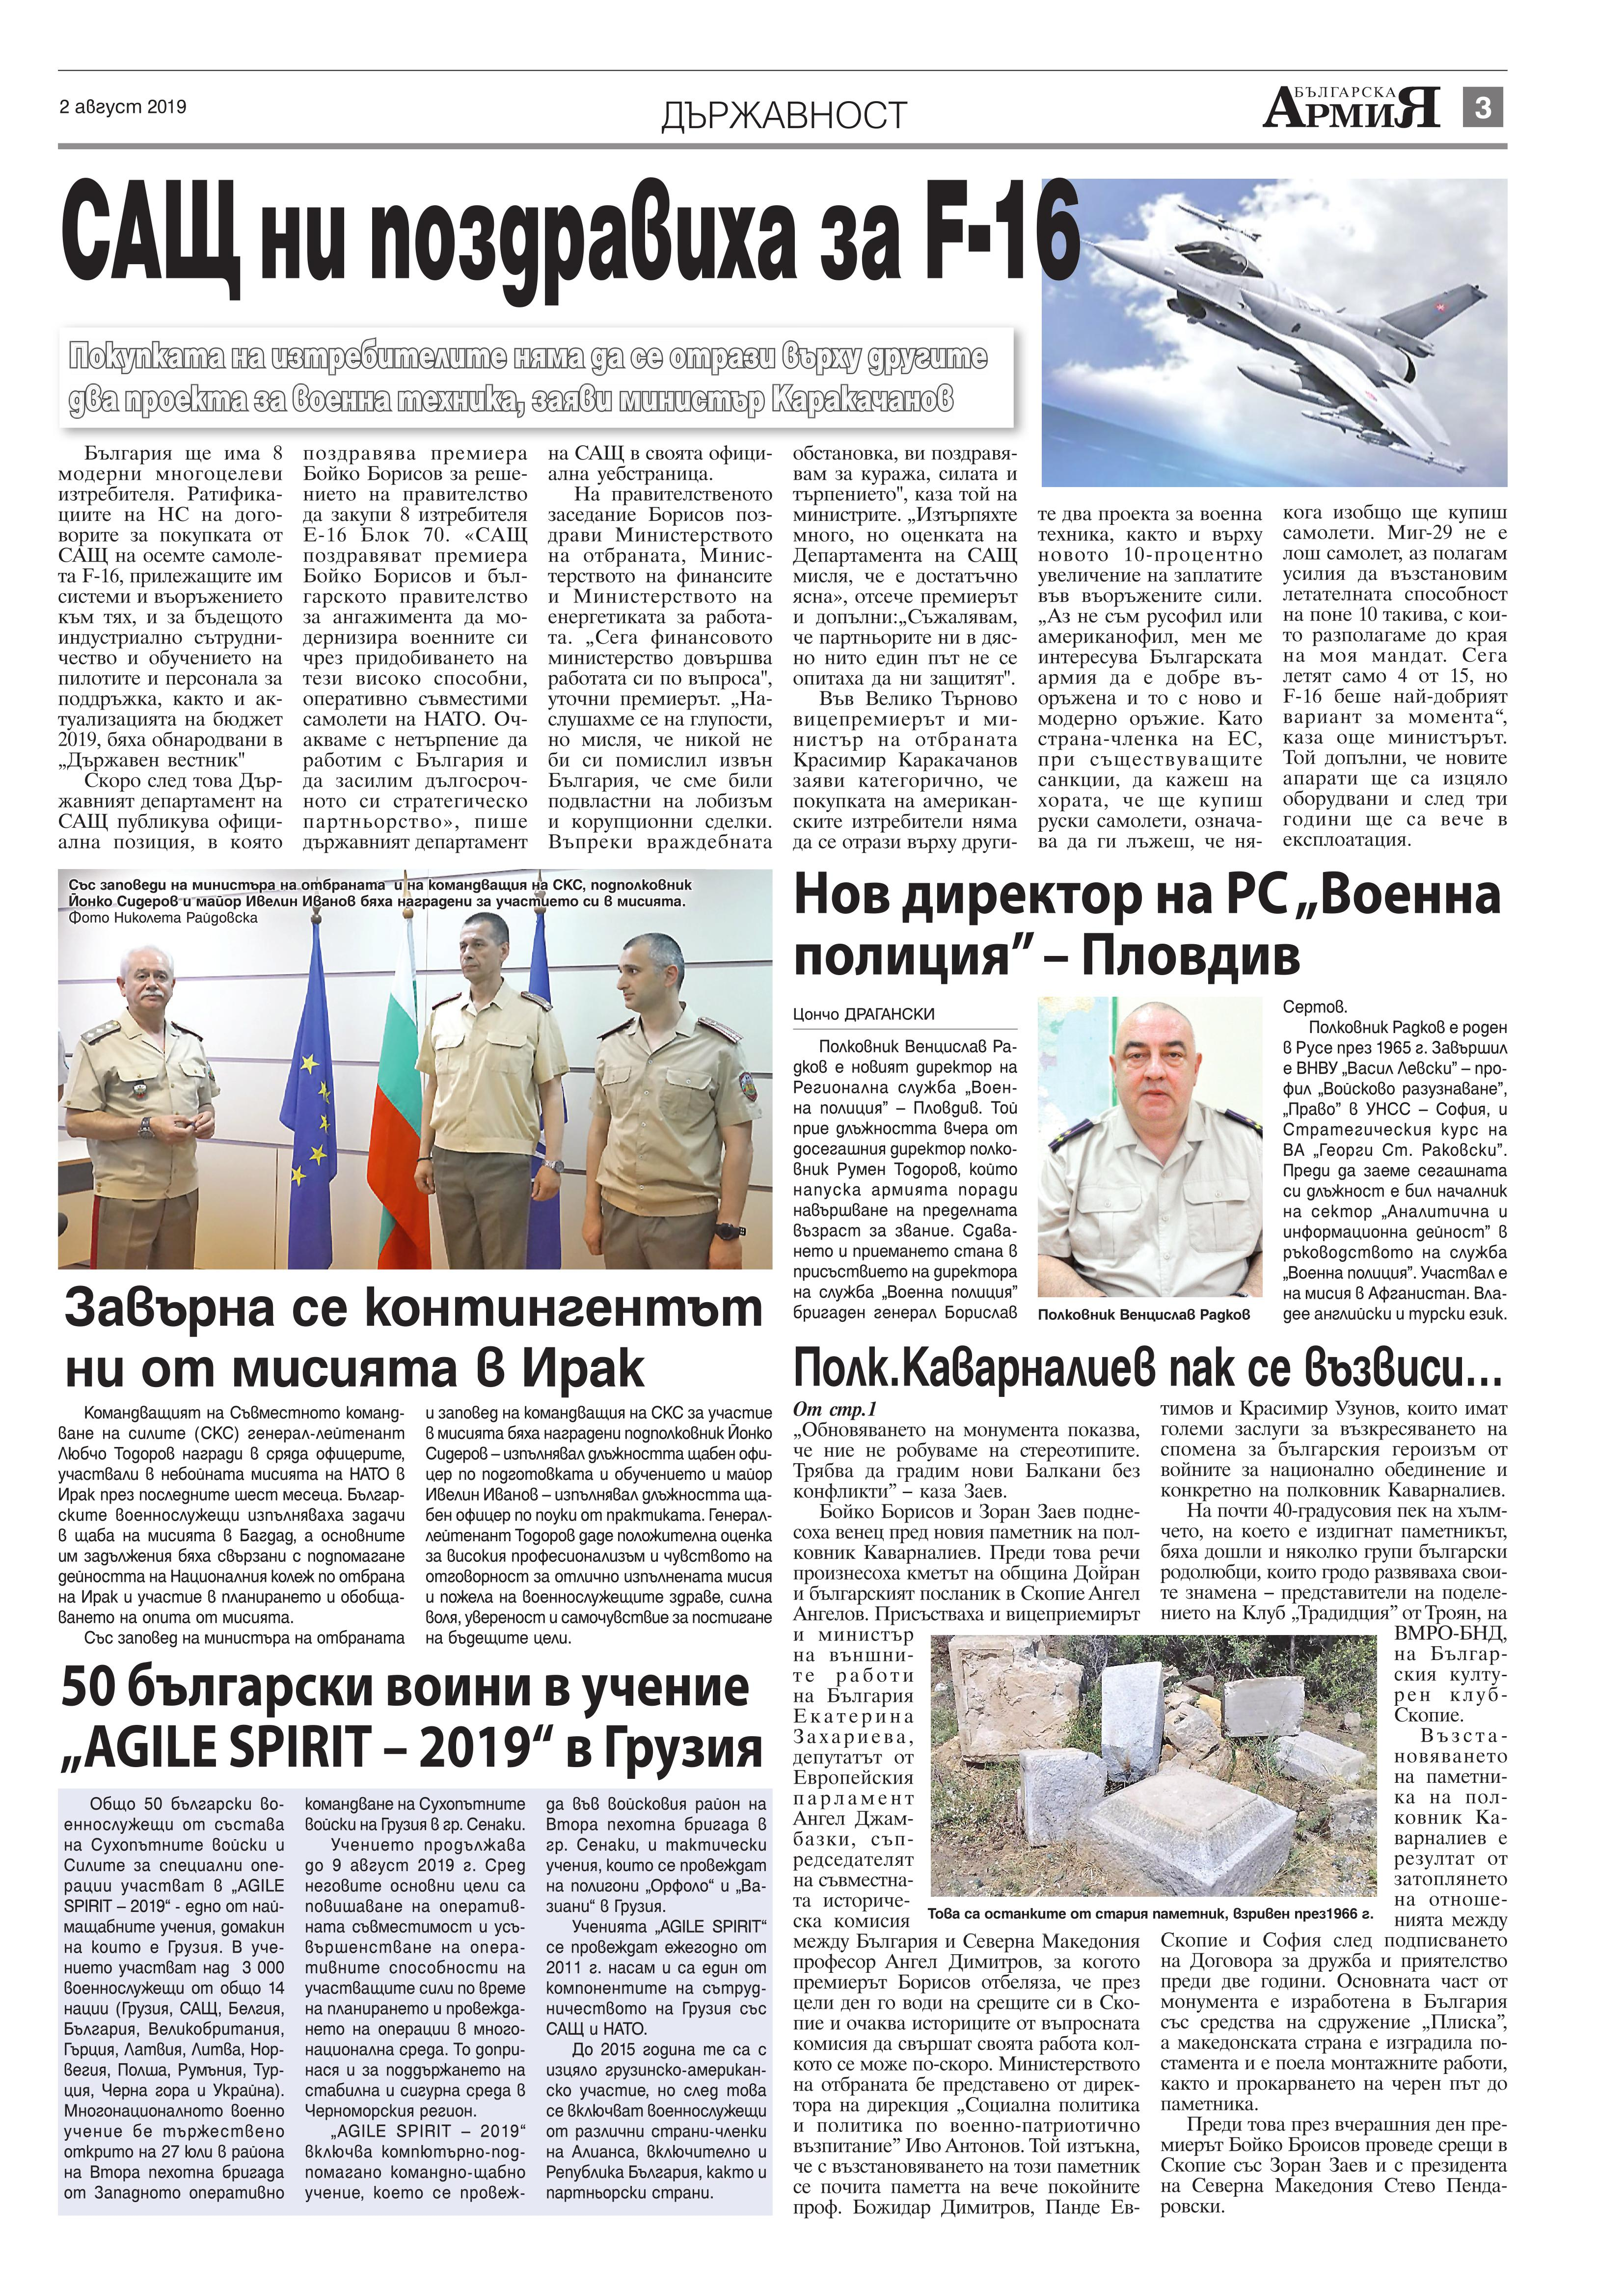 https://armymedia.bg/wp-content/uploads/2015/06/03.page1_-102.jpg